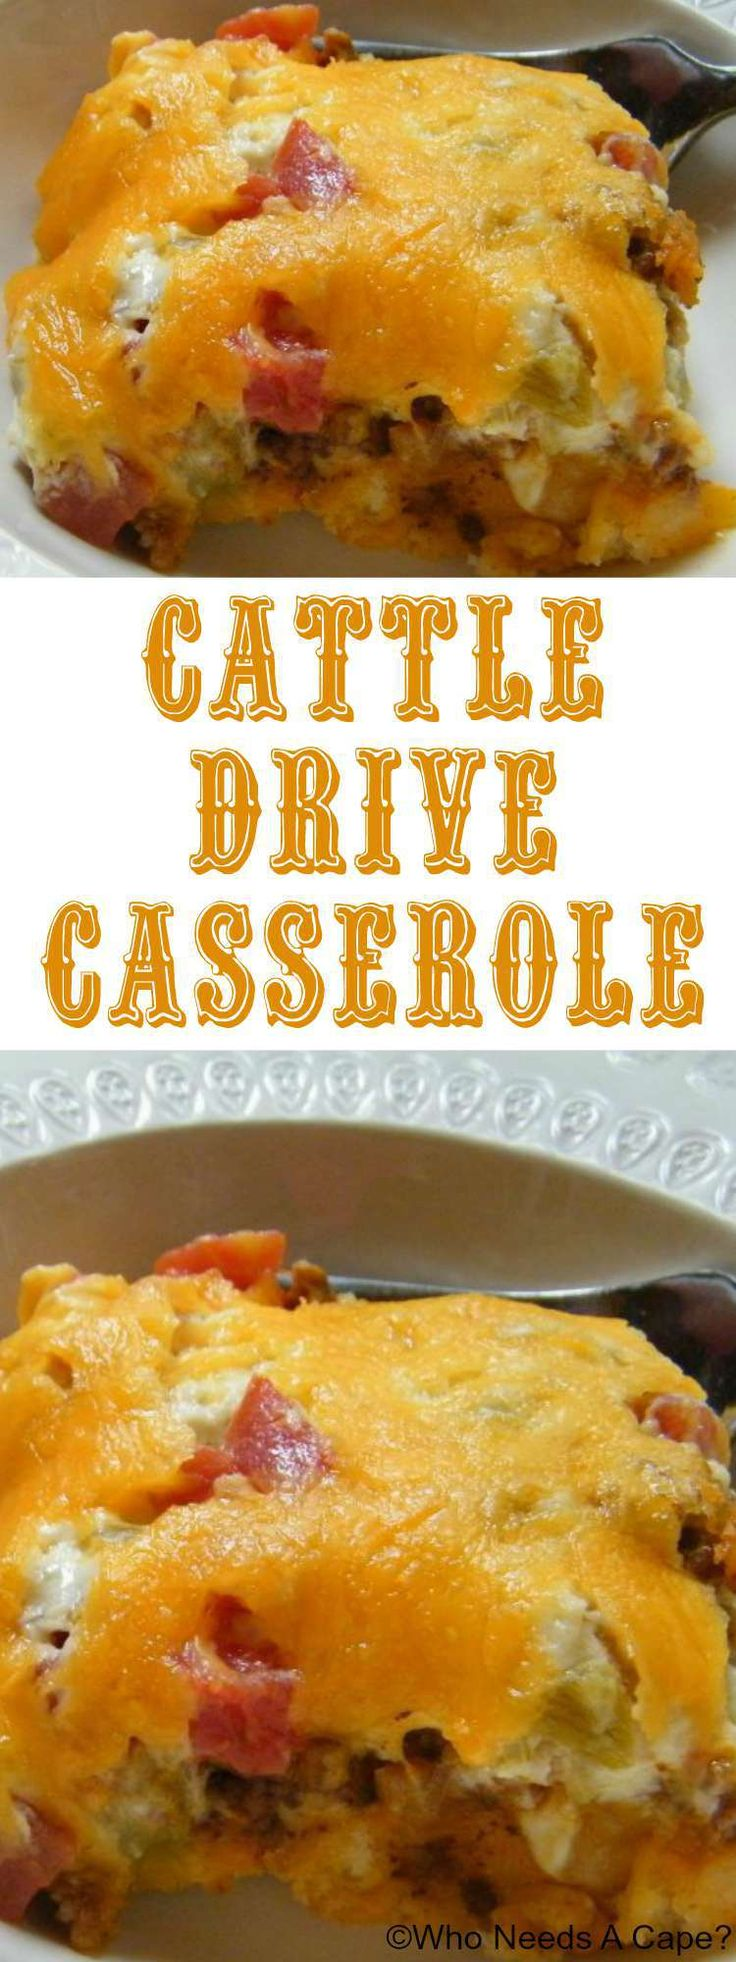 Cattle Drive Casserole, the ultimate comfort food. Layers of cheese, meat and more cheese make for this satisfying casserole beyond delicious. {pinned over 12K times}